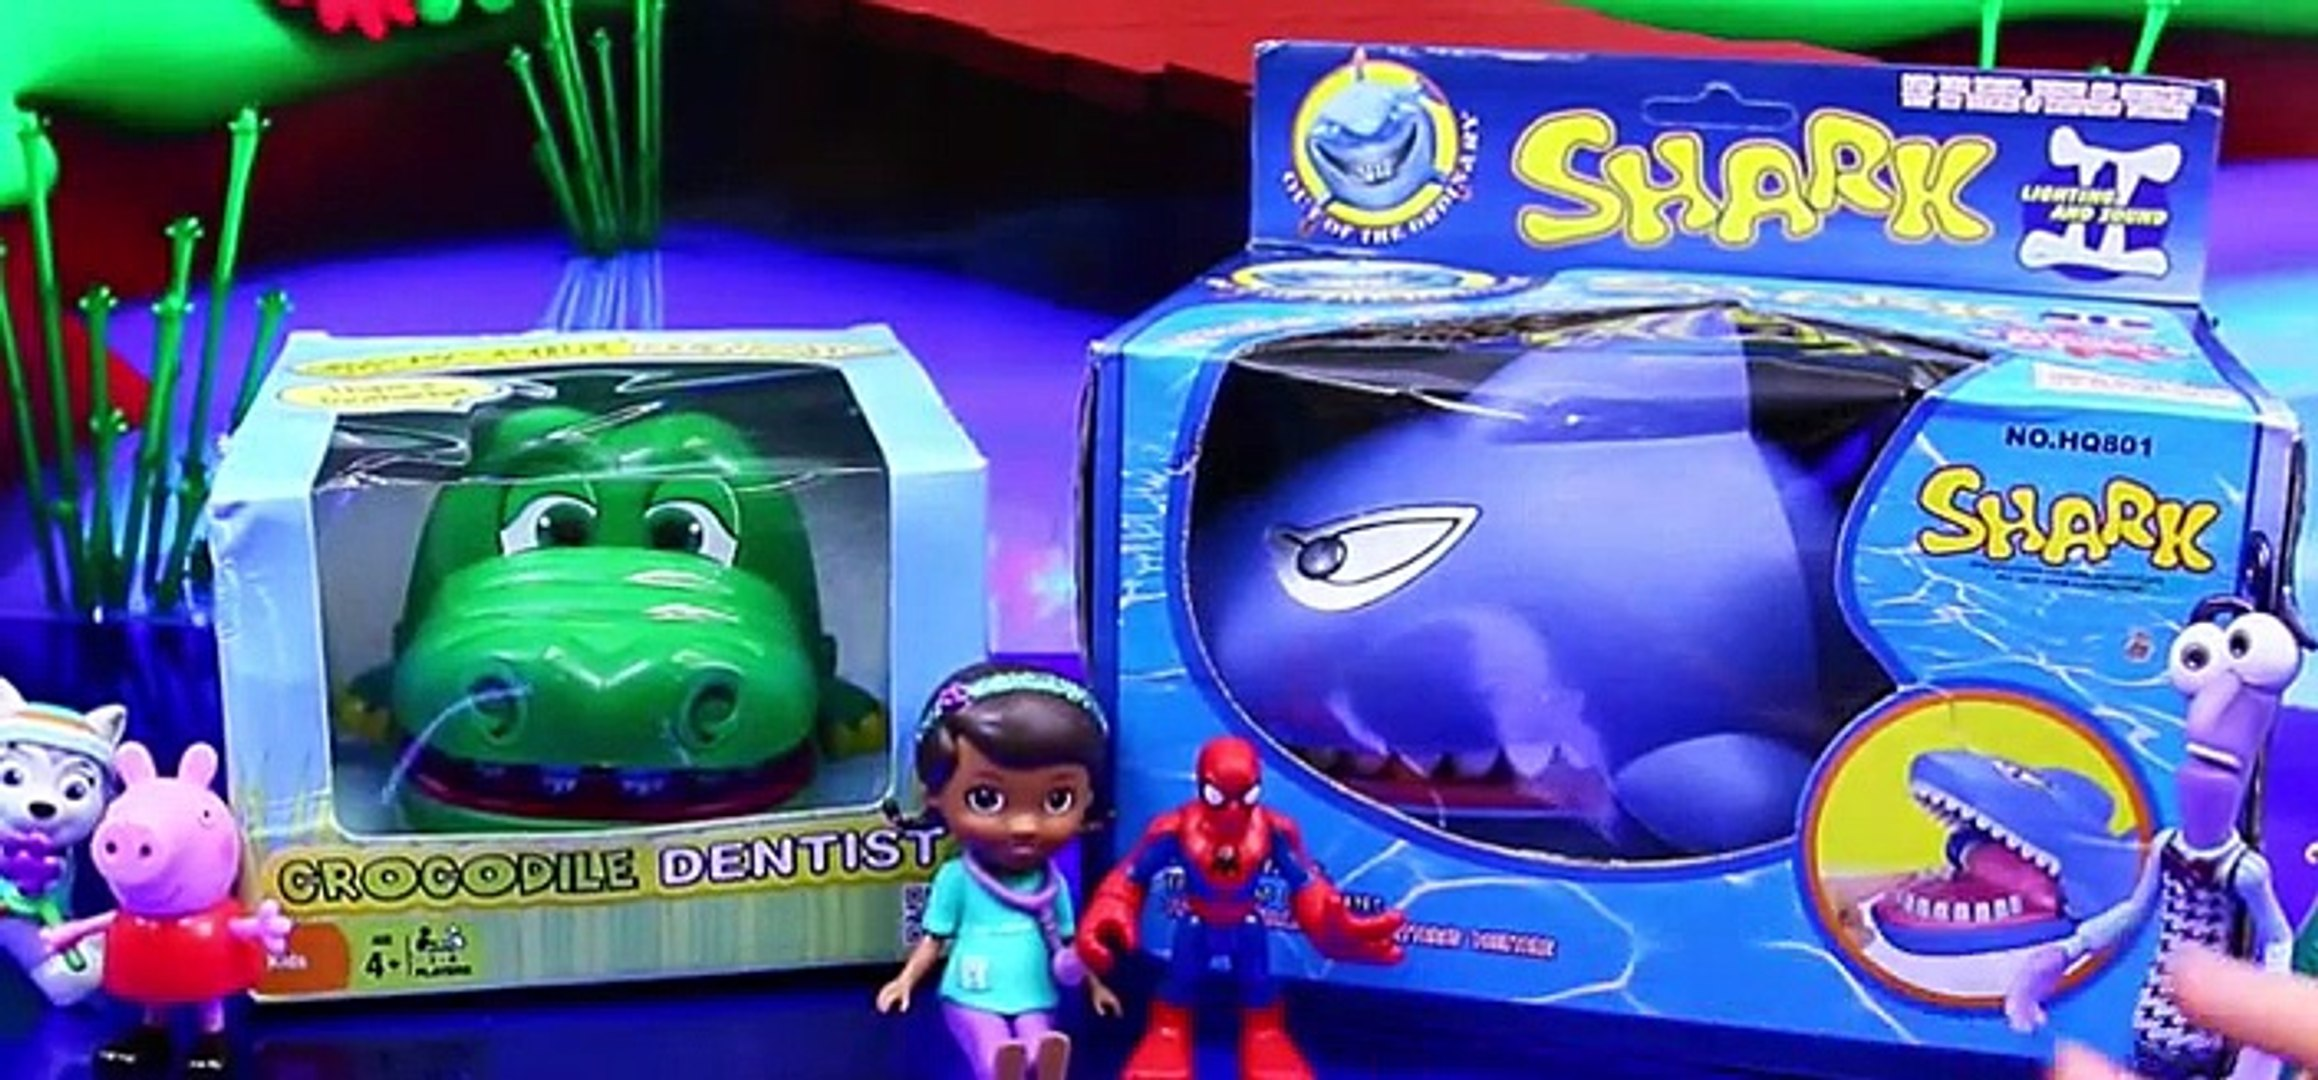 Crocodile Dentist & Shark ATTACK Toys from Inside Out, Frozen, Barbie & Paw Patrol [Full Epi